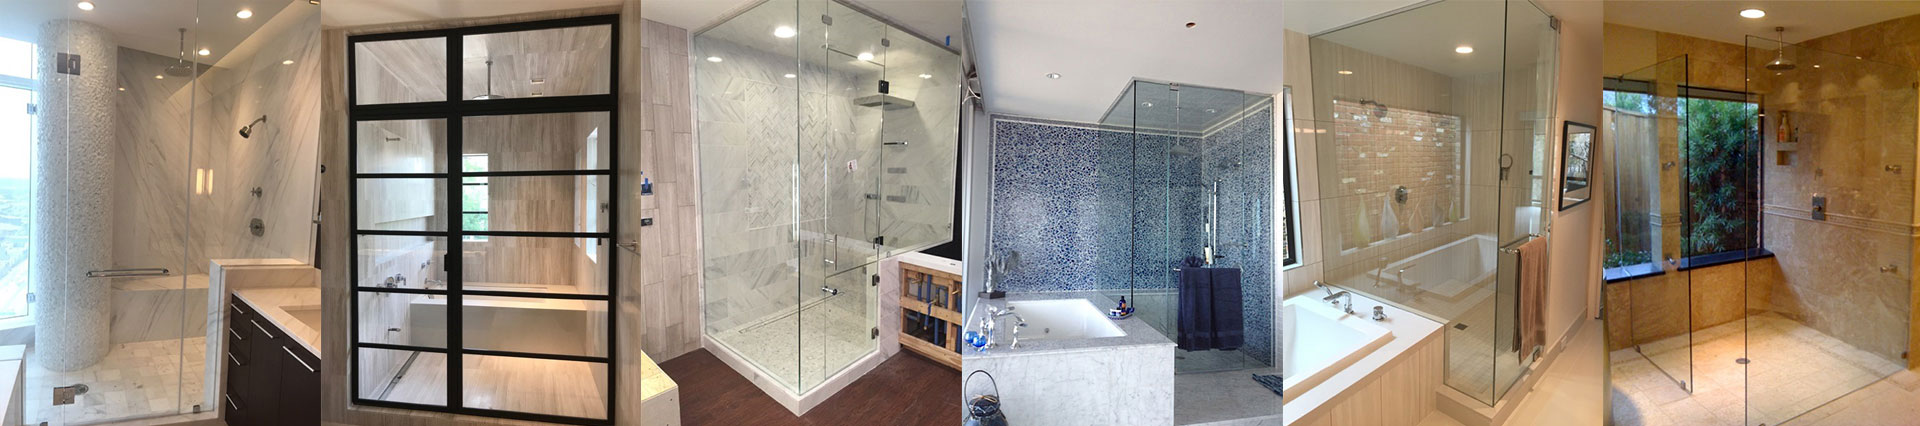 Glass Shower Doors / Enclosures